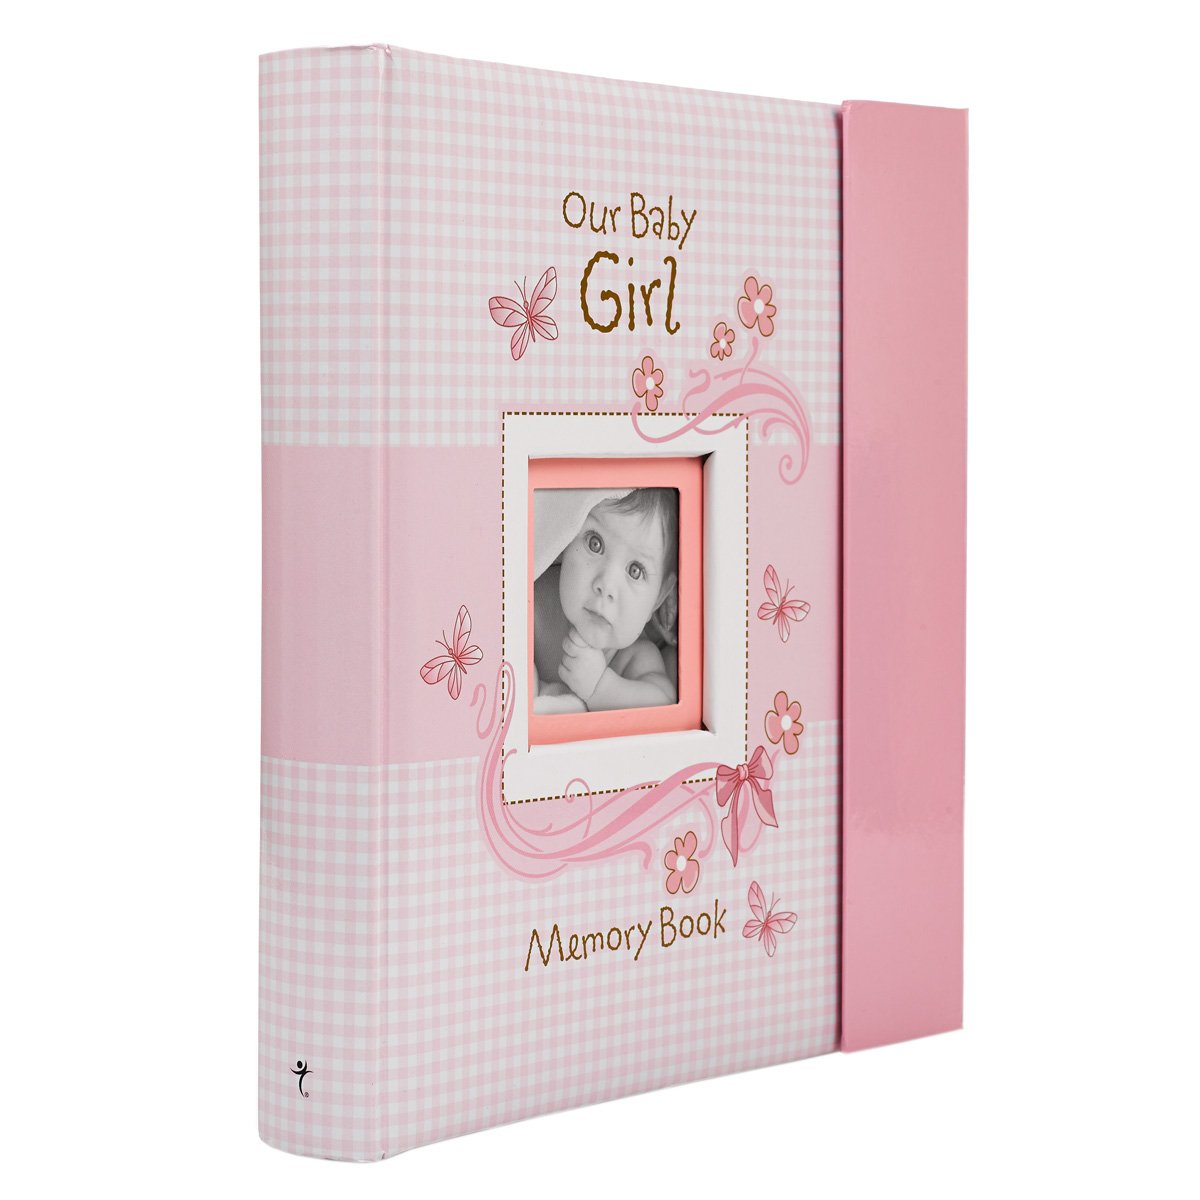 Christian Art Gifts Girl Baby Book of Memories Pink Keepsake Photo Album Our Baby Girl Memory Book Baby Book with Bible Verses, The First Year